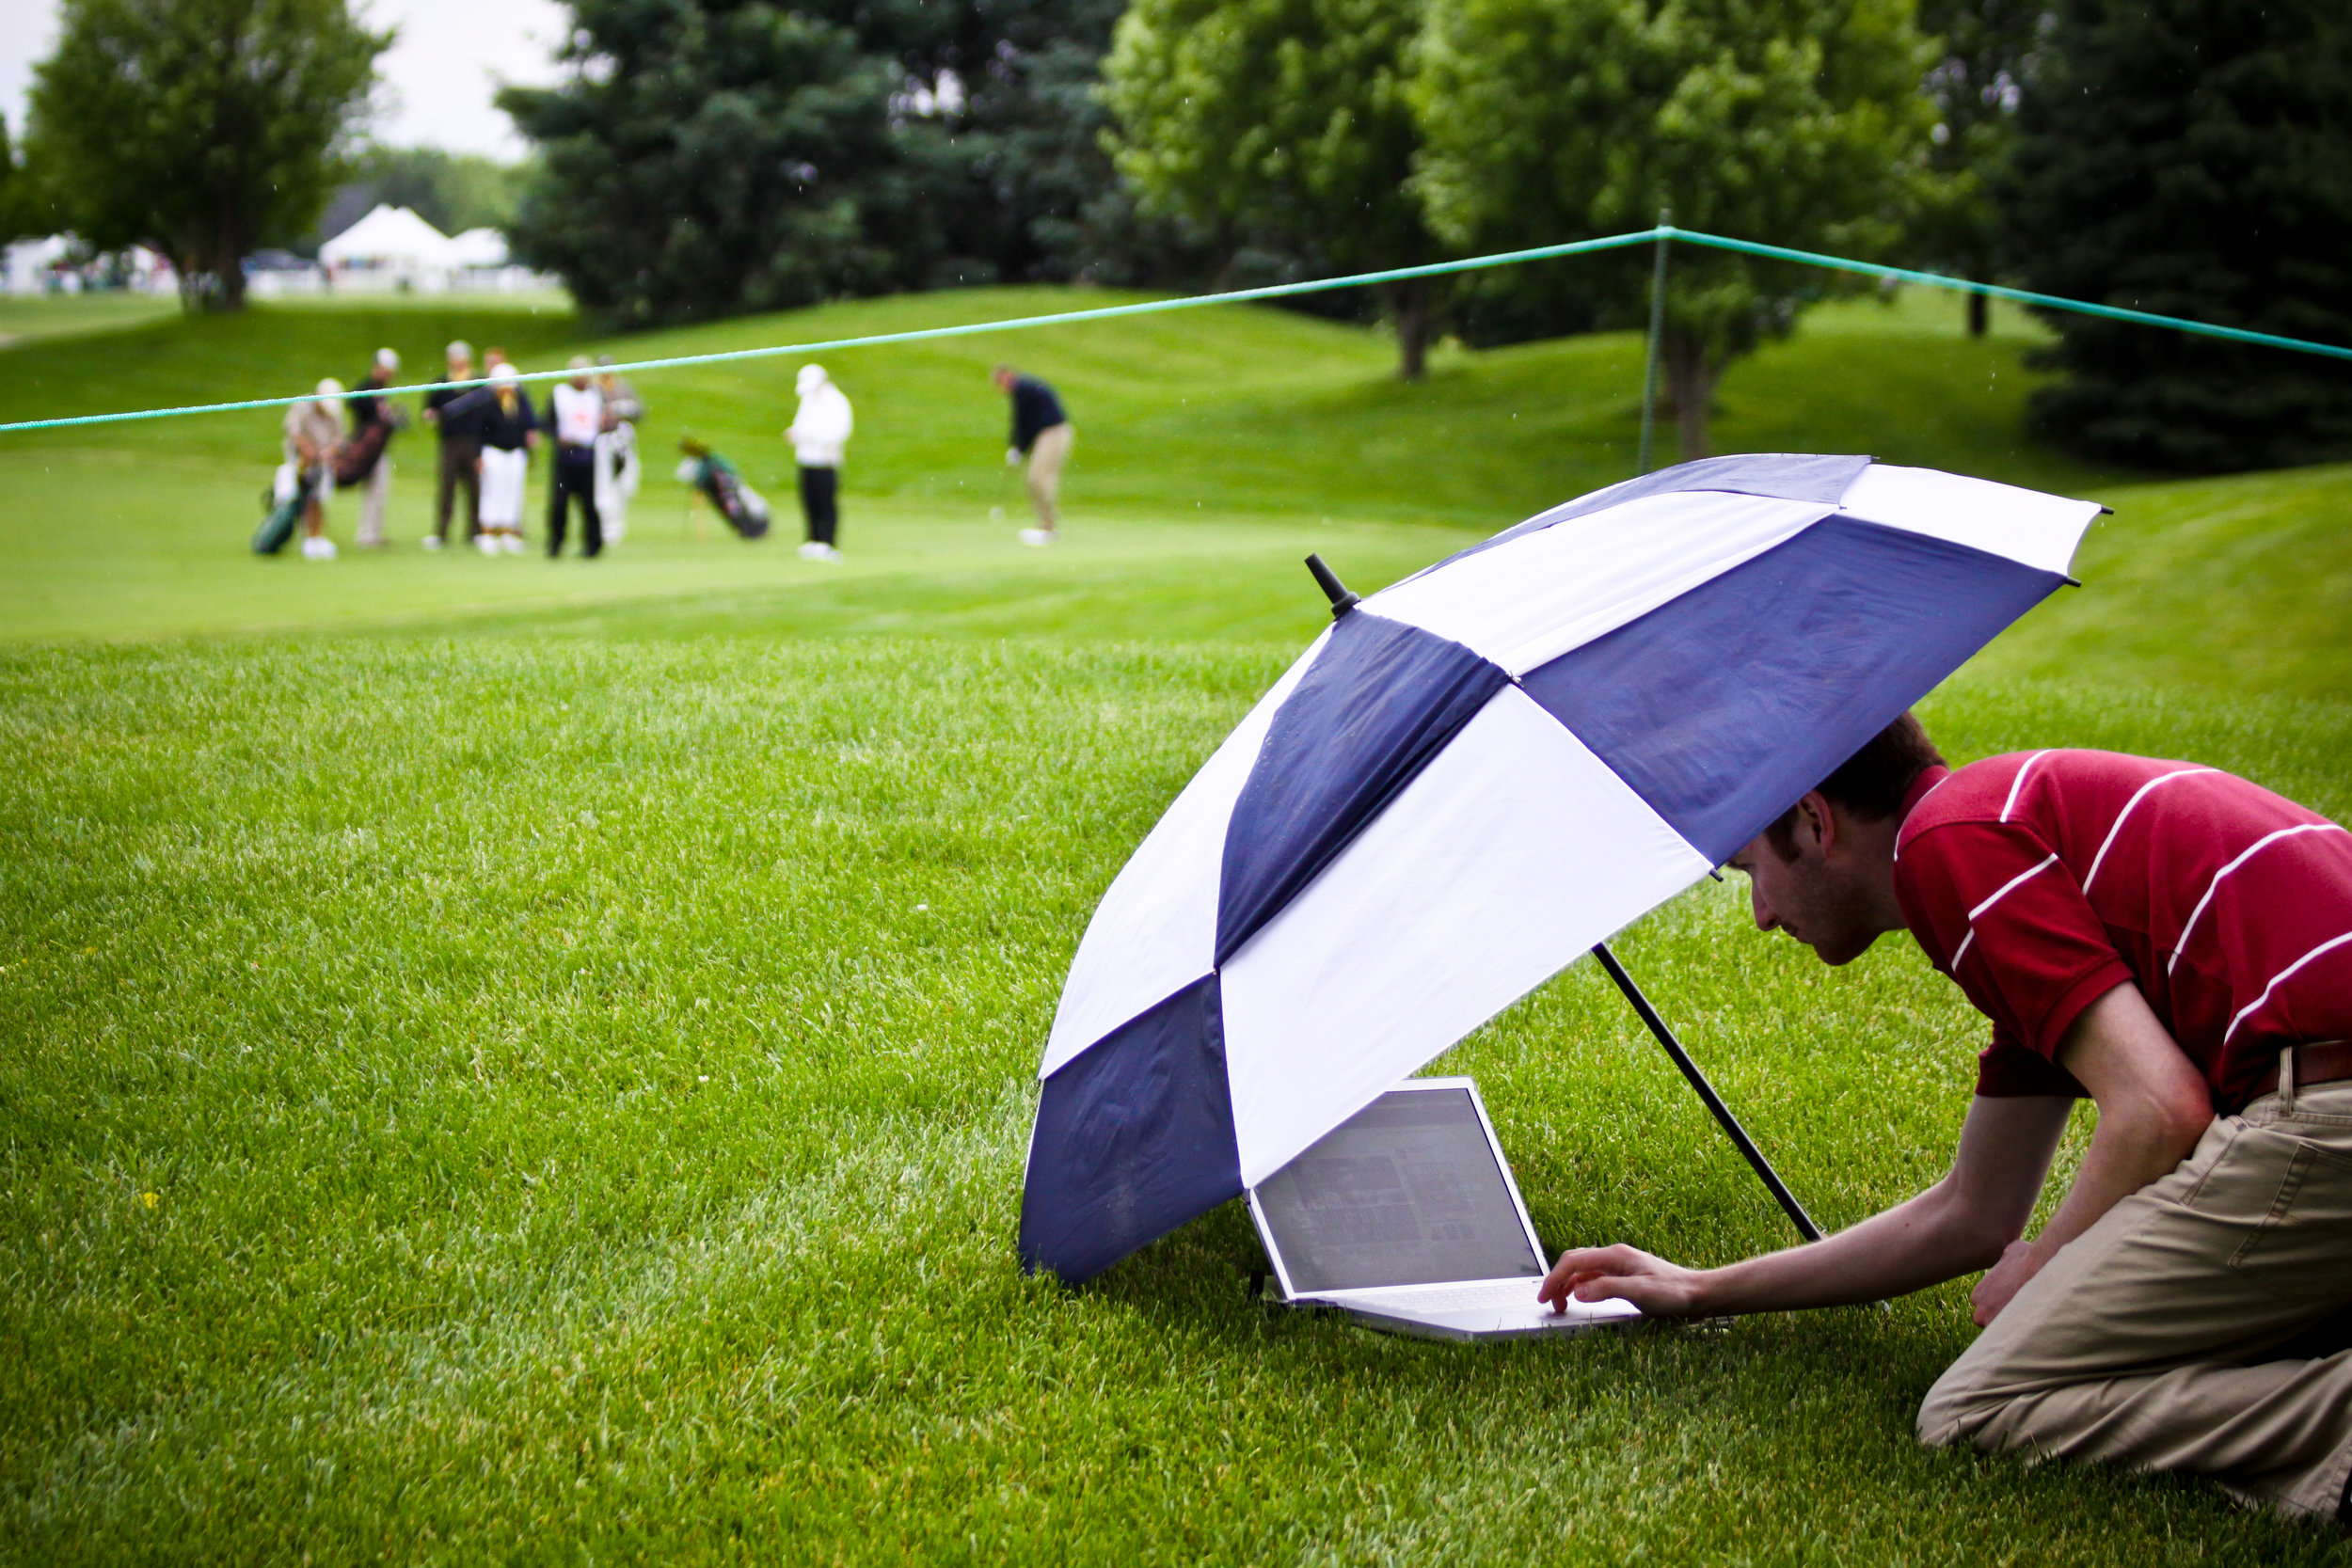 Photo by Matt Edwards. In 2010, I uploaded photos from the LPGA State Farm Classic golf tournament.